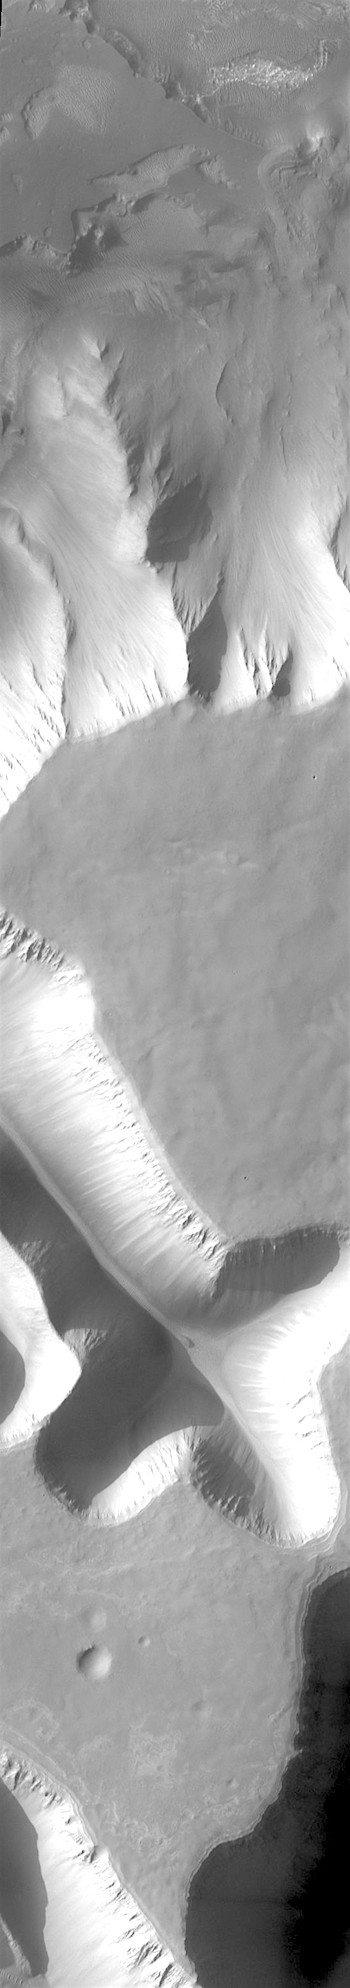 Sapping gullies in Louros Valles (THEMIS_IOTD_20180301)